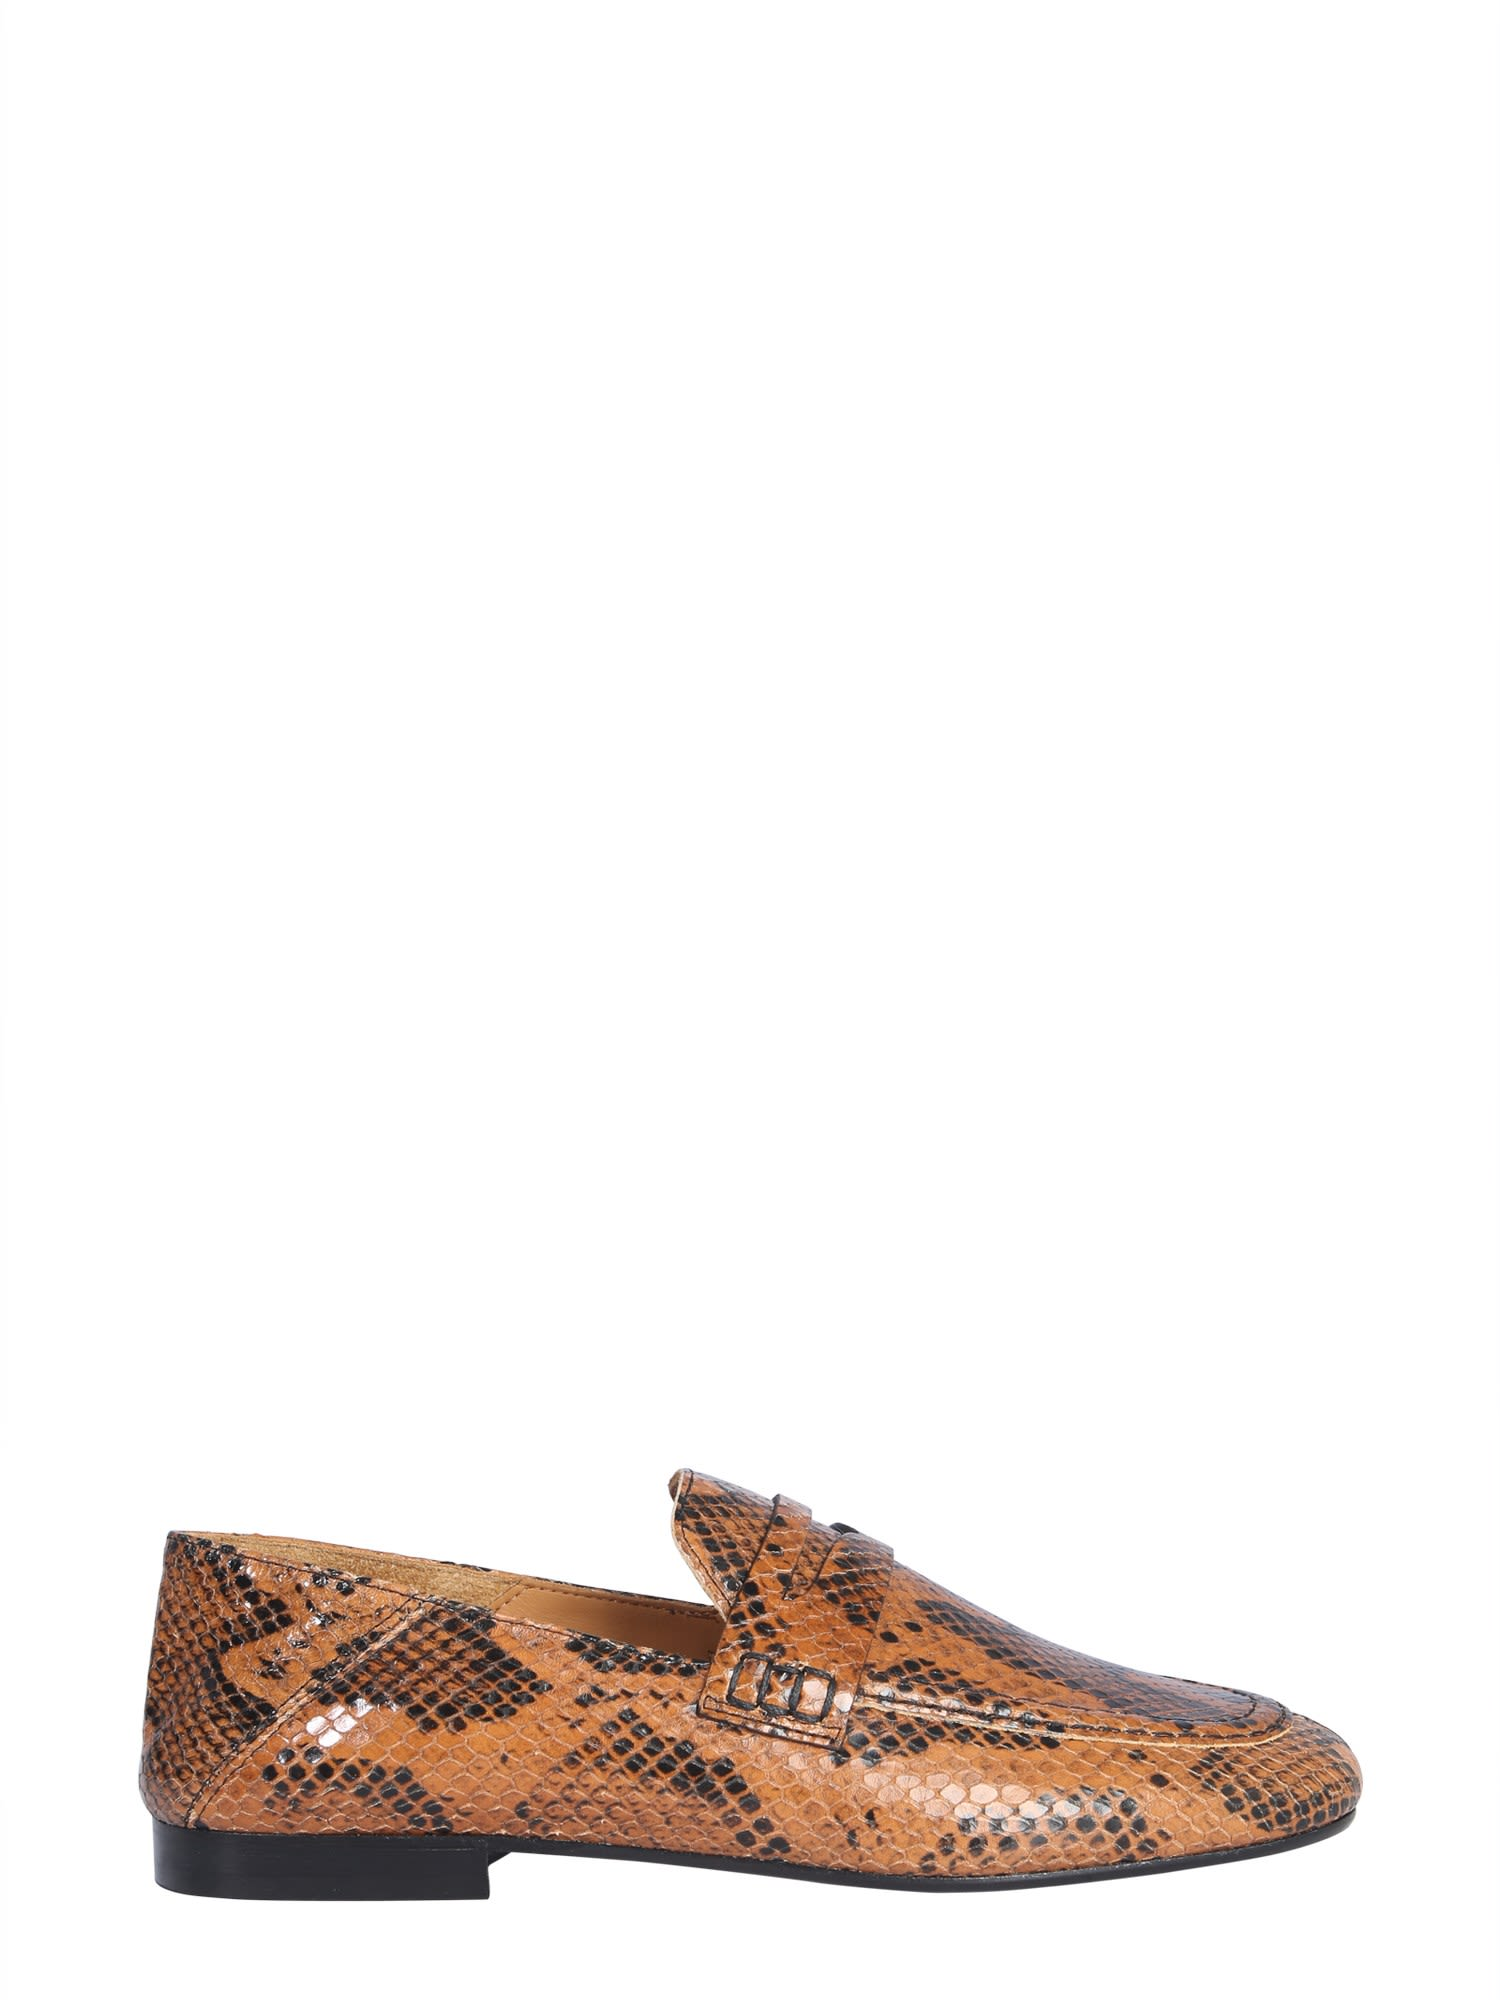 9e3019f7b7a Shop Isabel Marant Flats on sale at the Marie Claire Edit